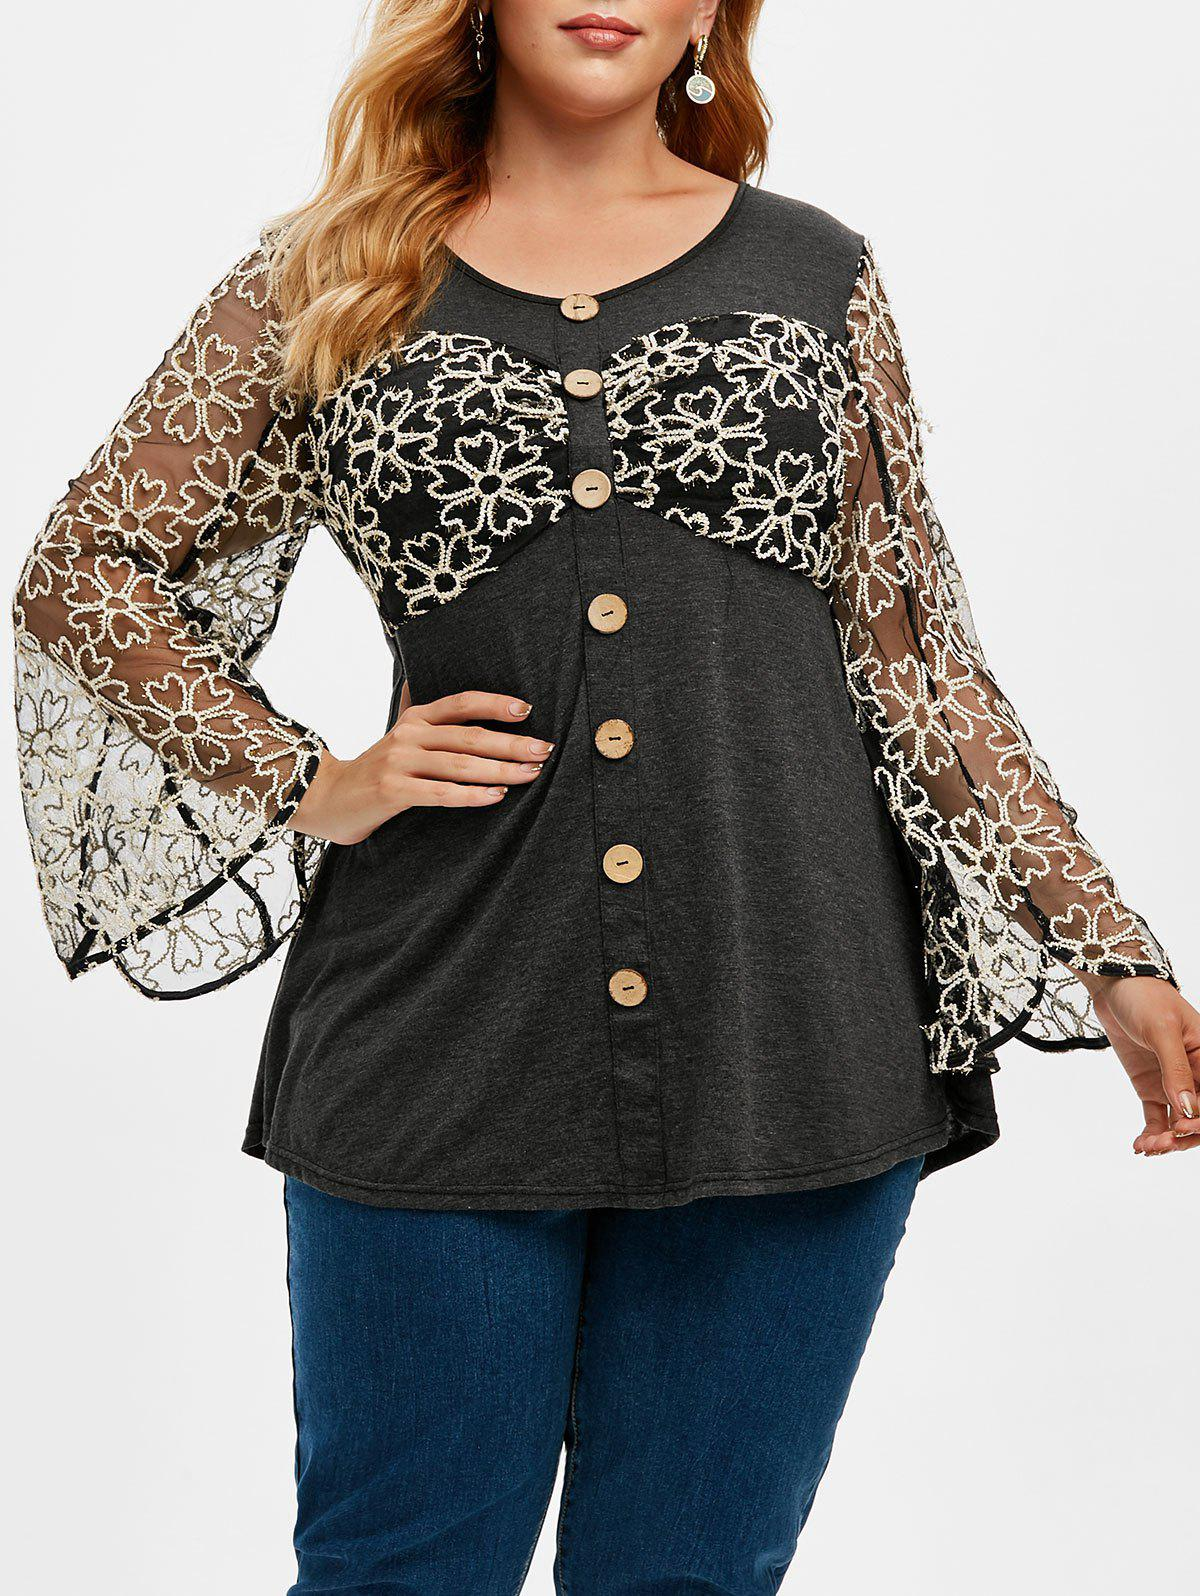 Plus Size Floral Mesh Insert Buttons Heathered T Shirt - GRAY L